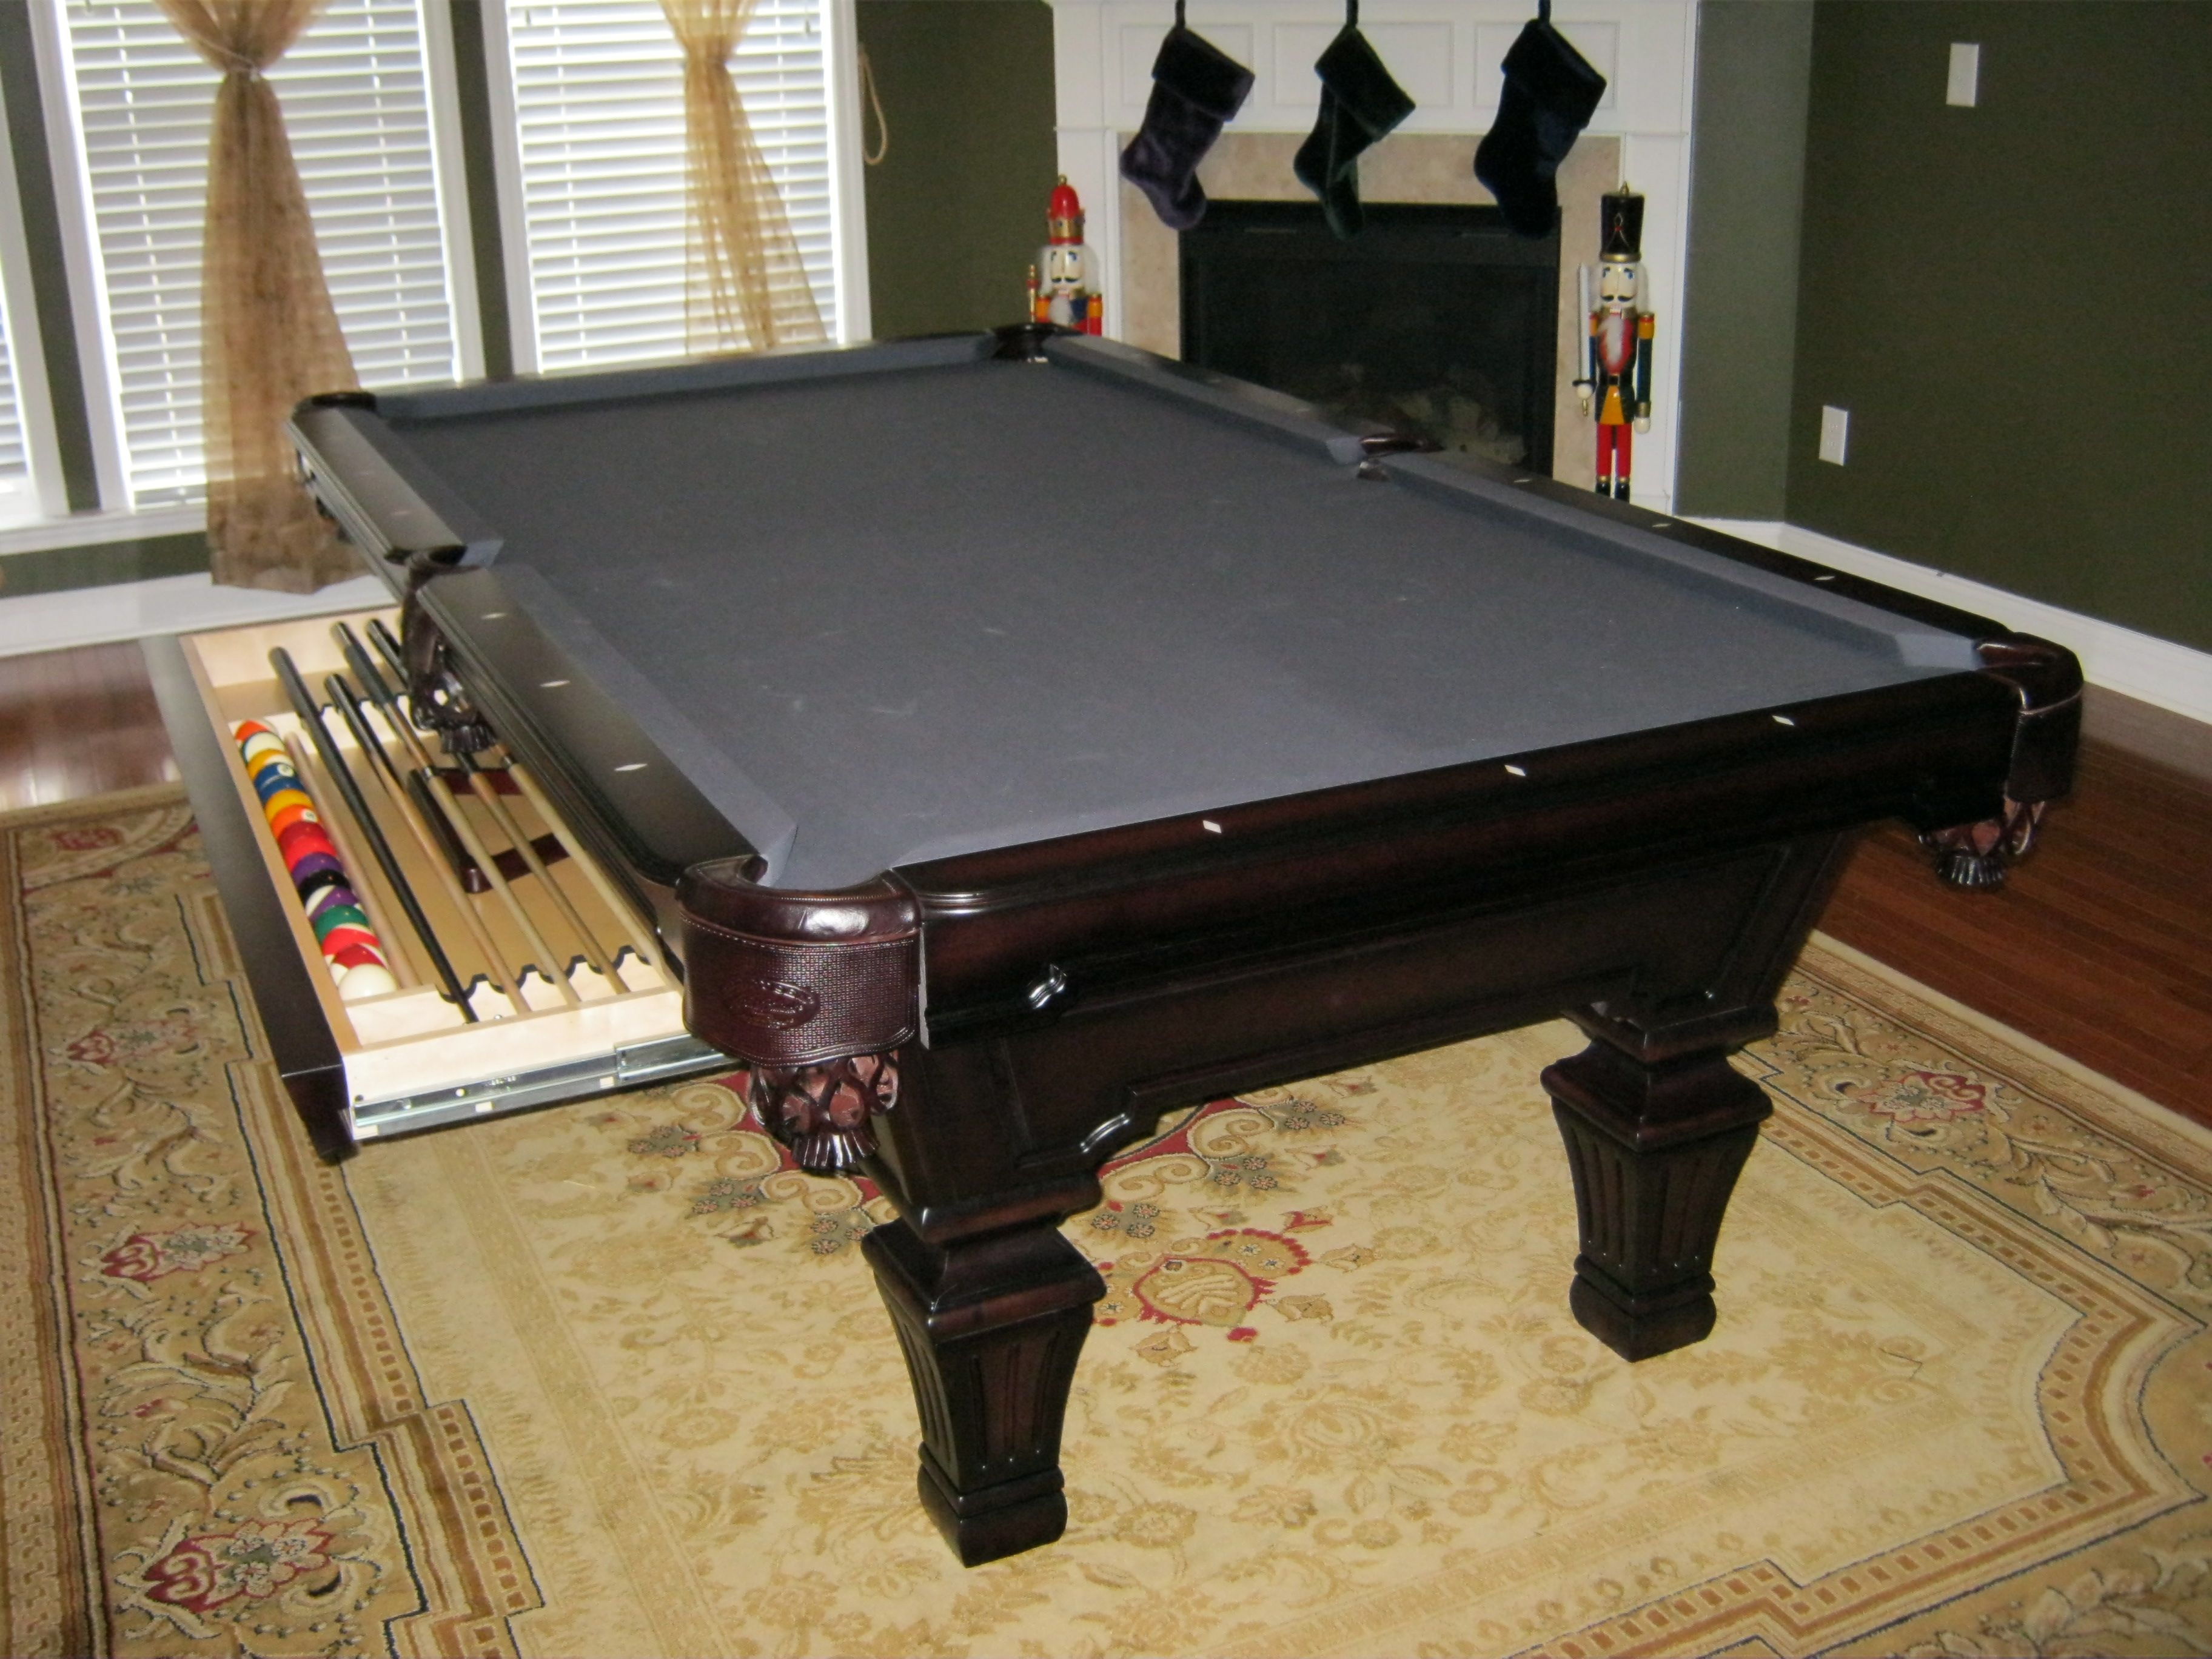 Olhausen Hampton In Heritage Cherry With Drawer Option From Atlantic Spas  And Billiards In Raleigh,